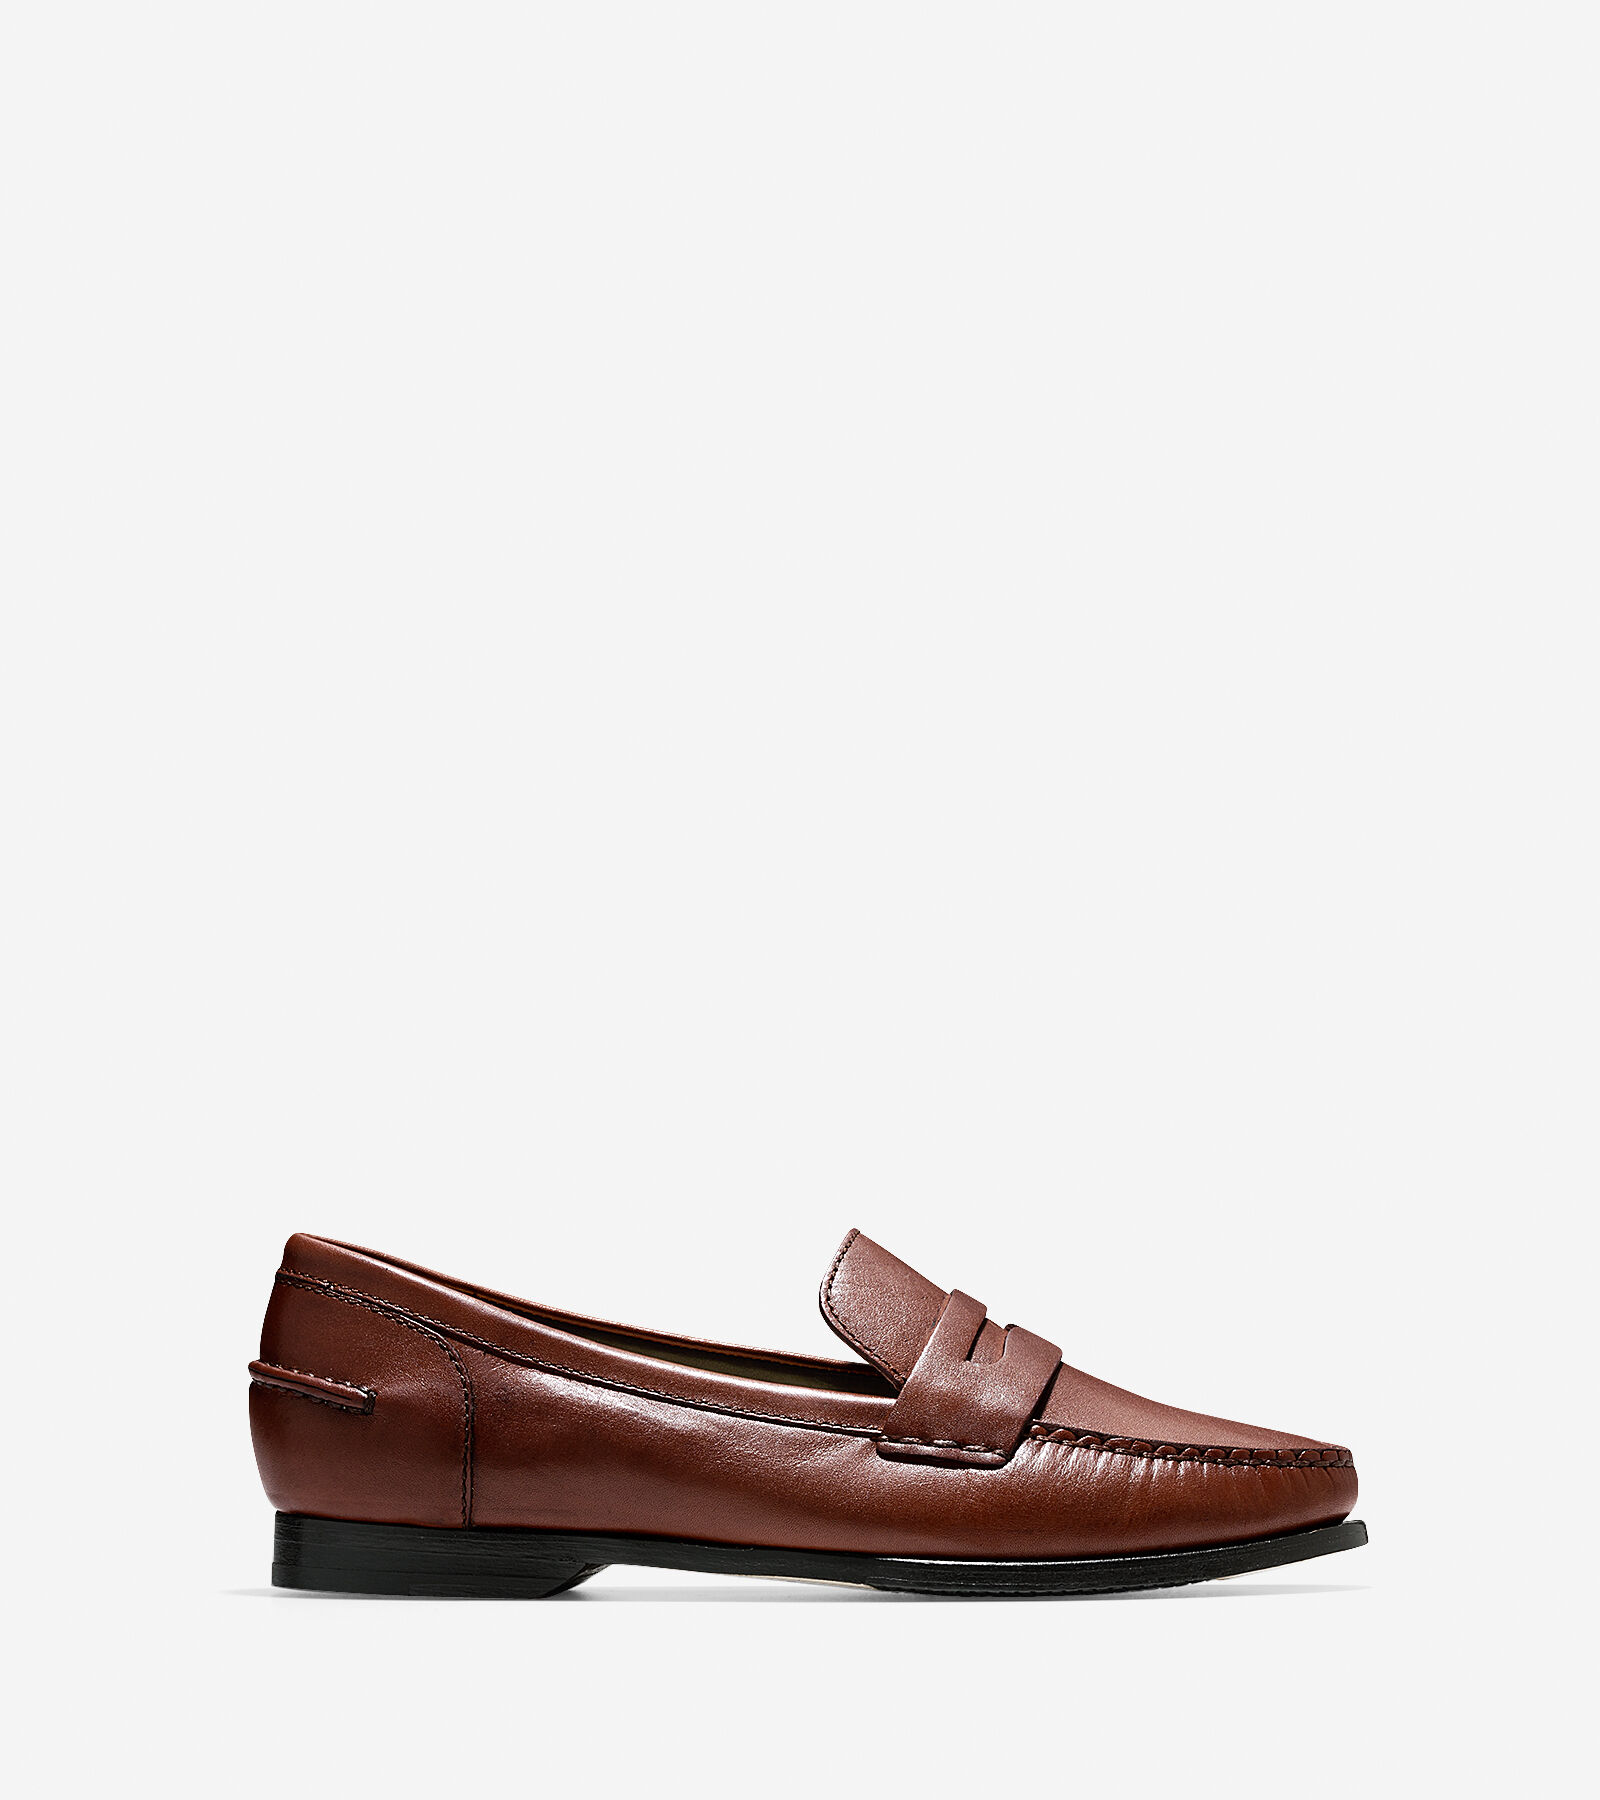 451500626f4 Womens pinch grand penny loafers in sequoia cole haan jpg 2000x2250 Tan  womens loafers